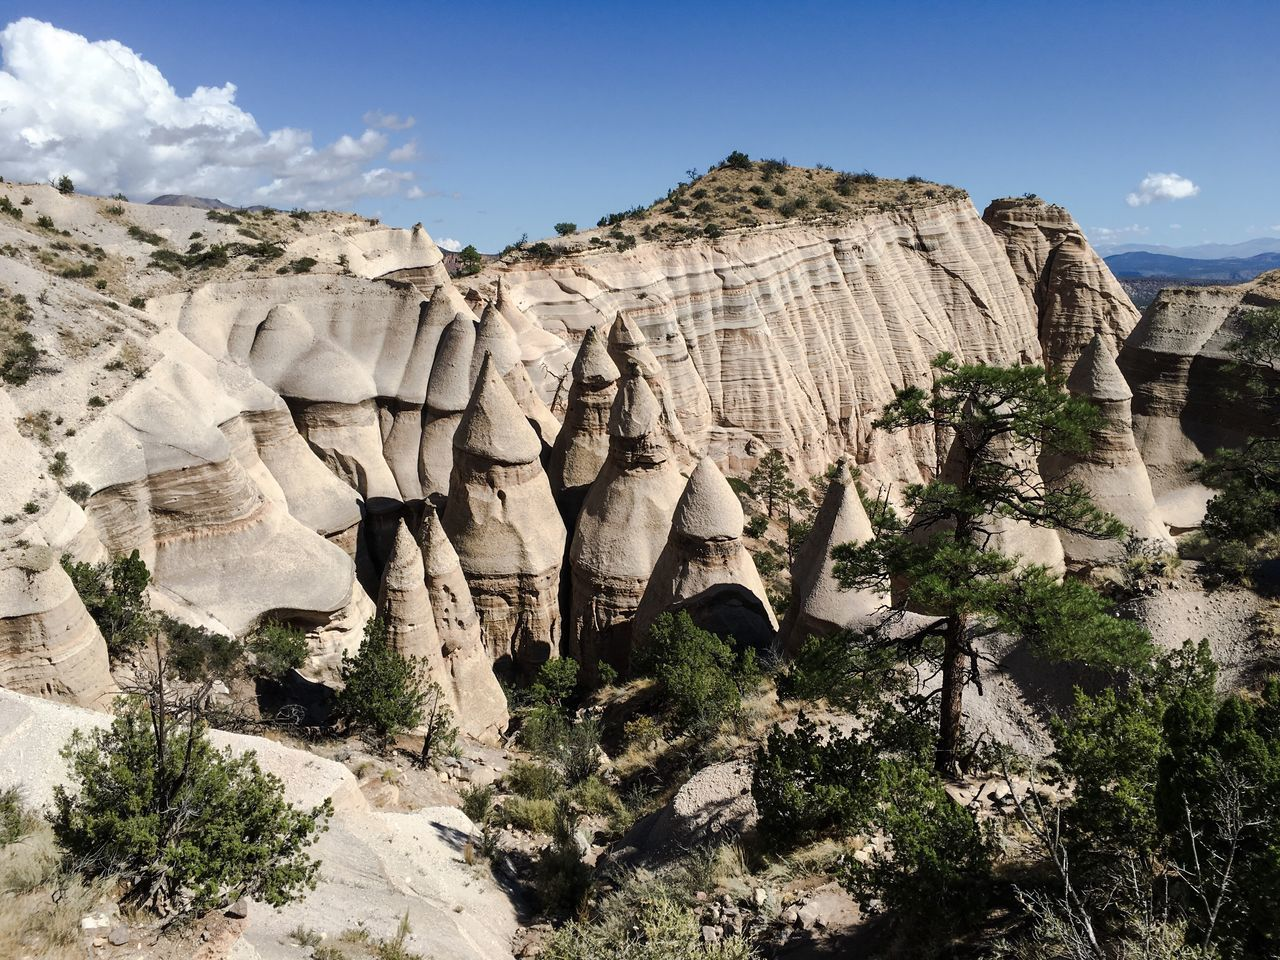 Sky Geology Rock Formation Cliff Physical Geography Nature National Park Extreme Terrain Outdoors Beauty In Nature Eroded Day Cloud - Sky Famous Place Rock Rocky Canyon Arid Climate Rocky Mountains Remote Kasha-Katuwe Tent Rocks National Monument Tourism USA Sandstone Miles Away